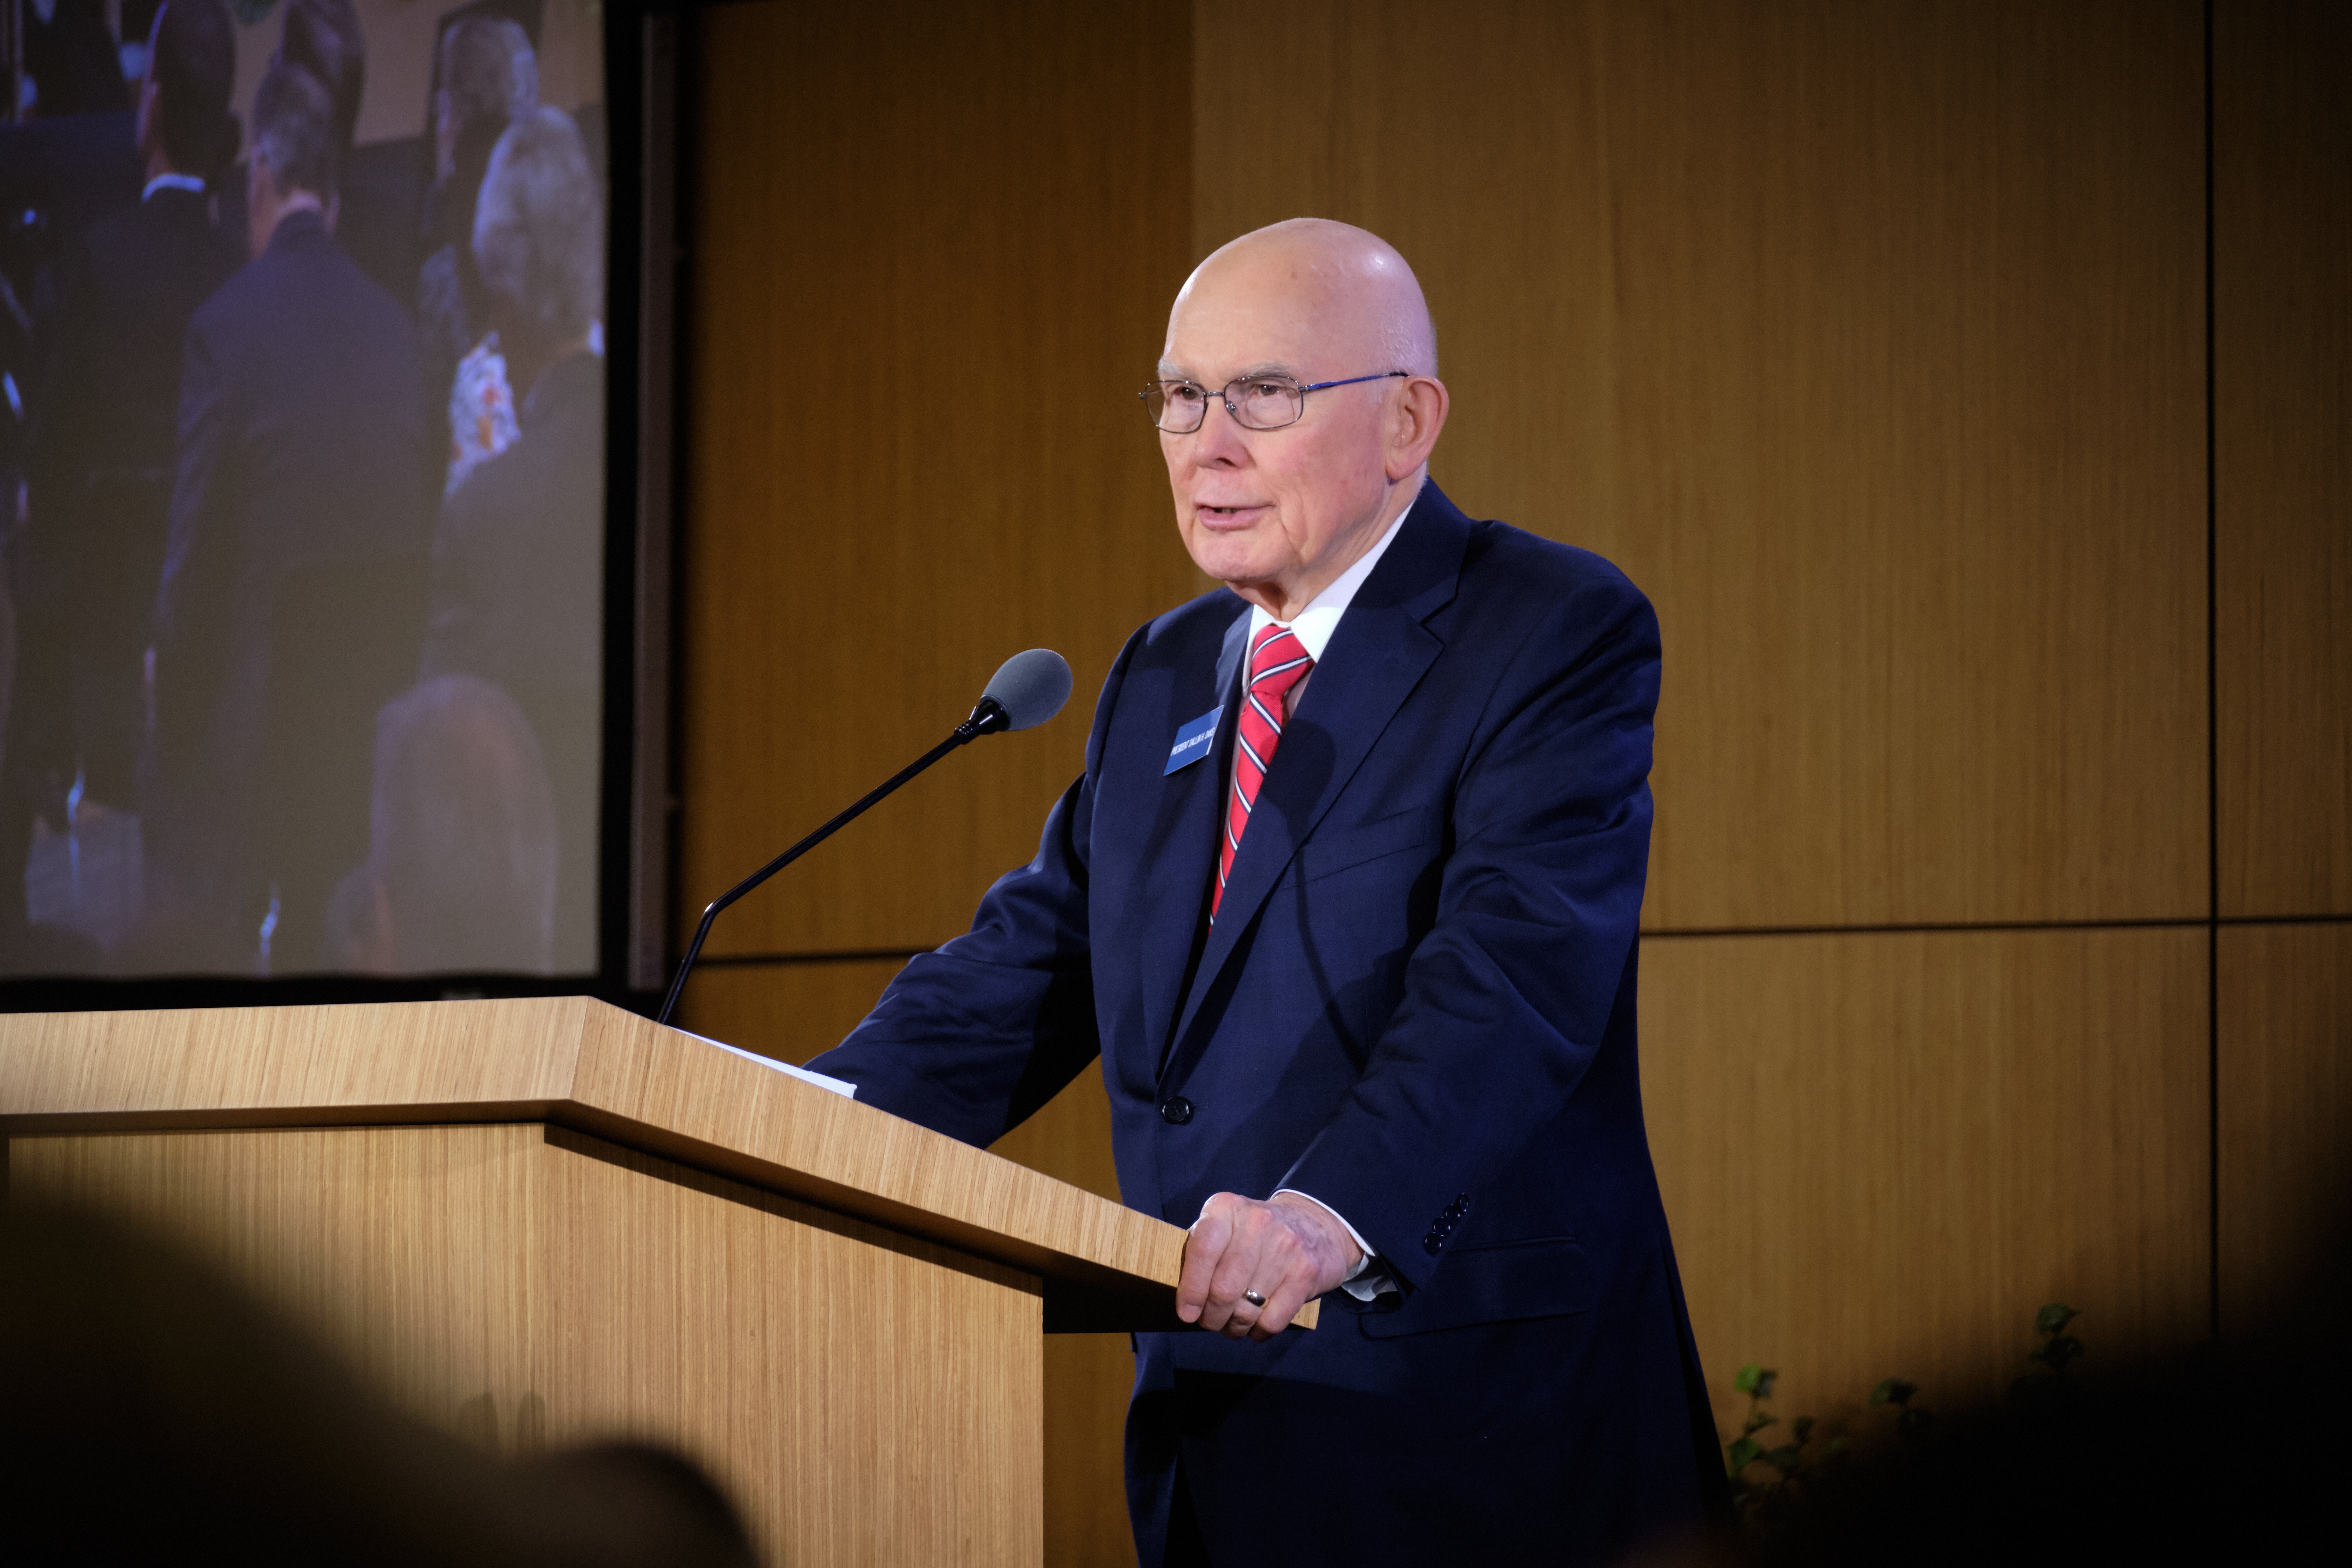 President Dallin H. Oaks, first counselor in the First Presidency, addresses new mission presidents and their companions Monday, June 24, at the New Mission Leaderships Seminar held at the Provo Missionary Training Center in Provo, Utah.